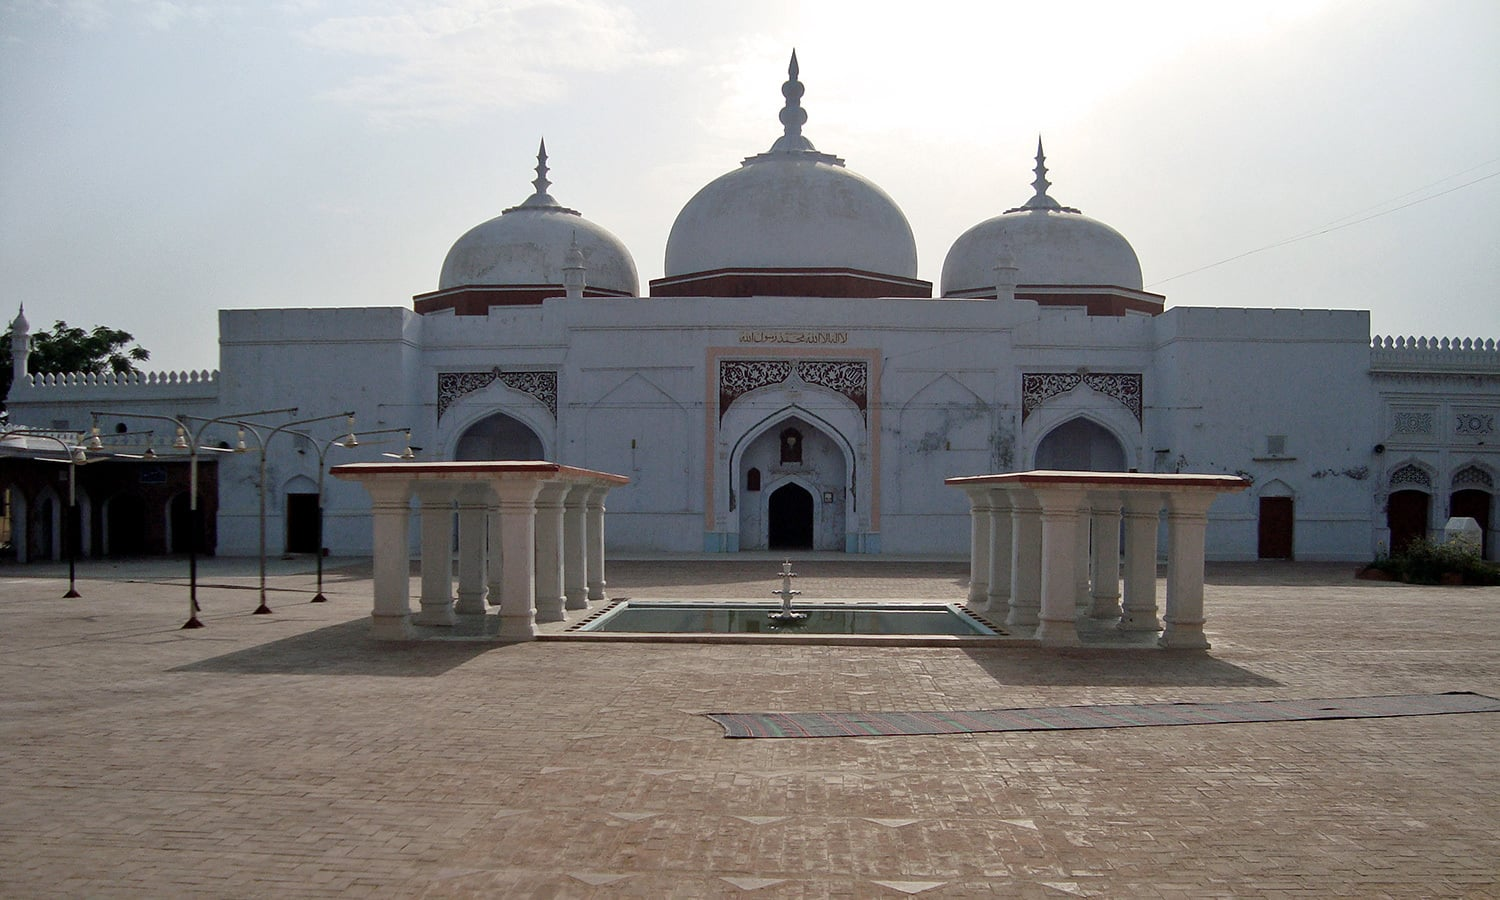 Sher Shah Suri Jamia Mosque, built in the 1540s.